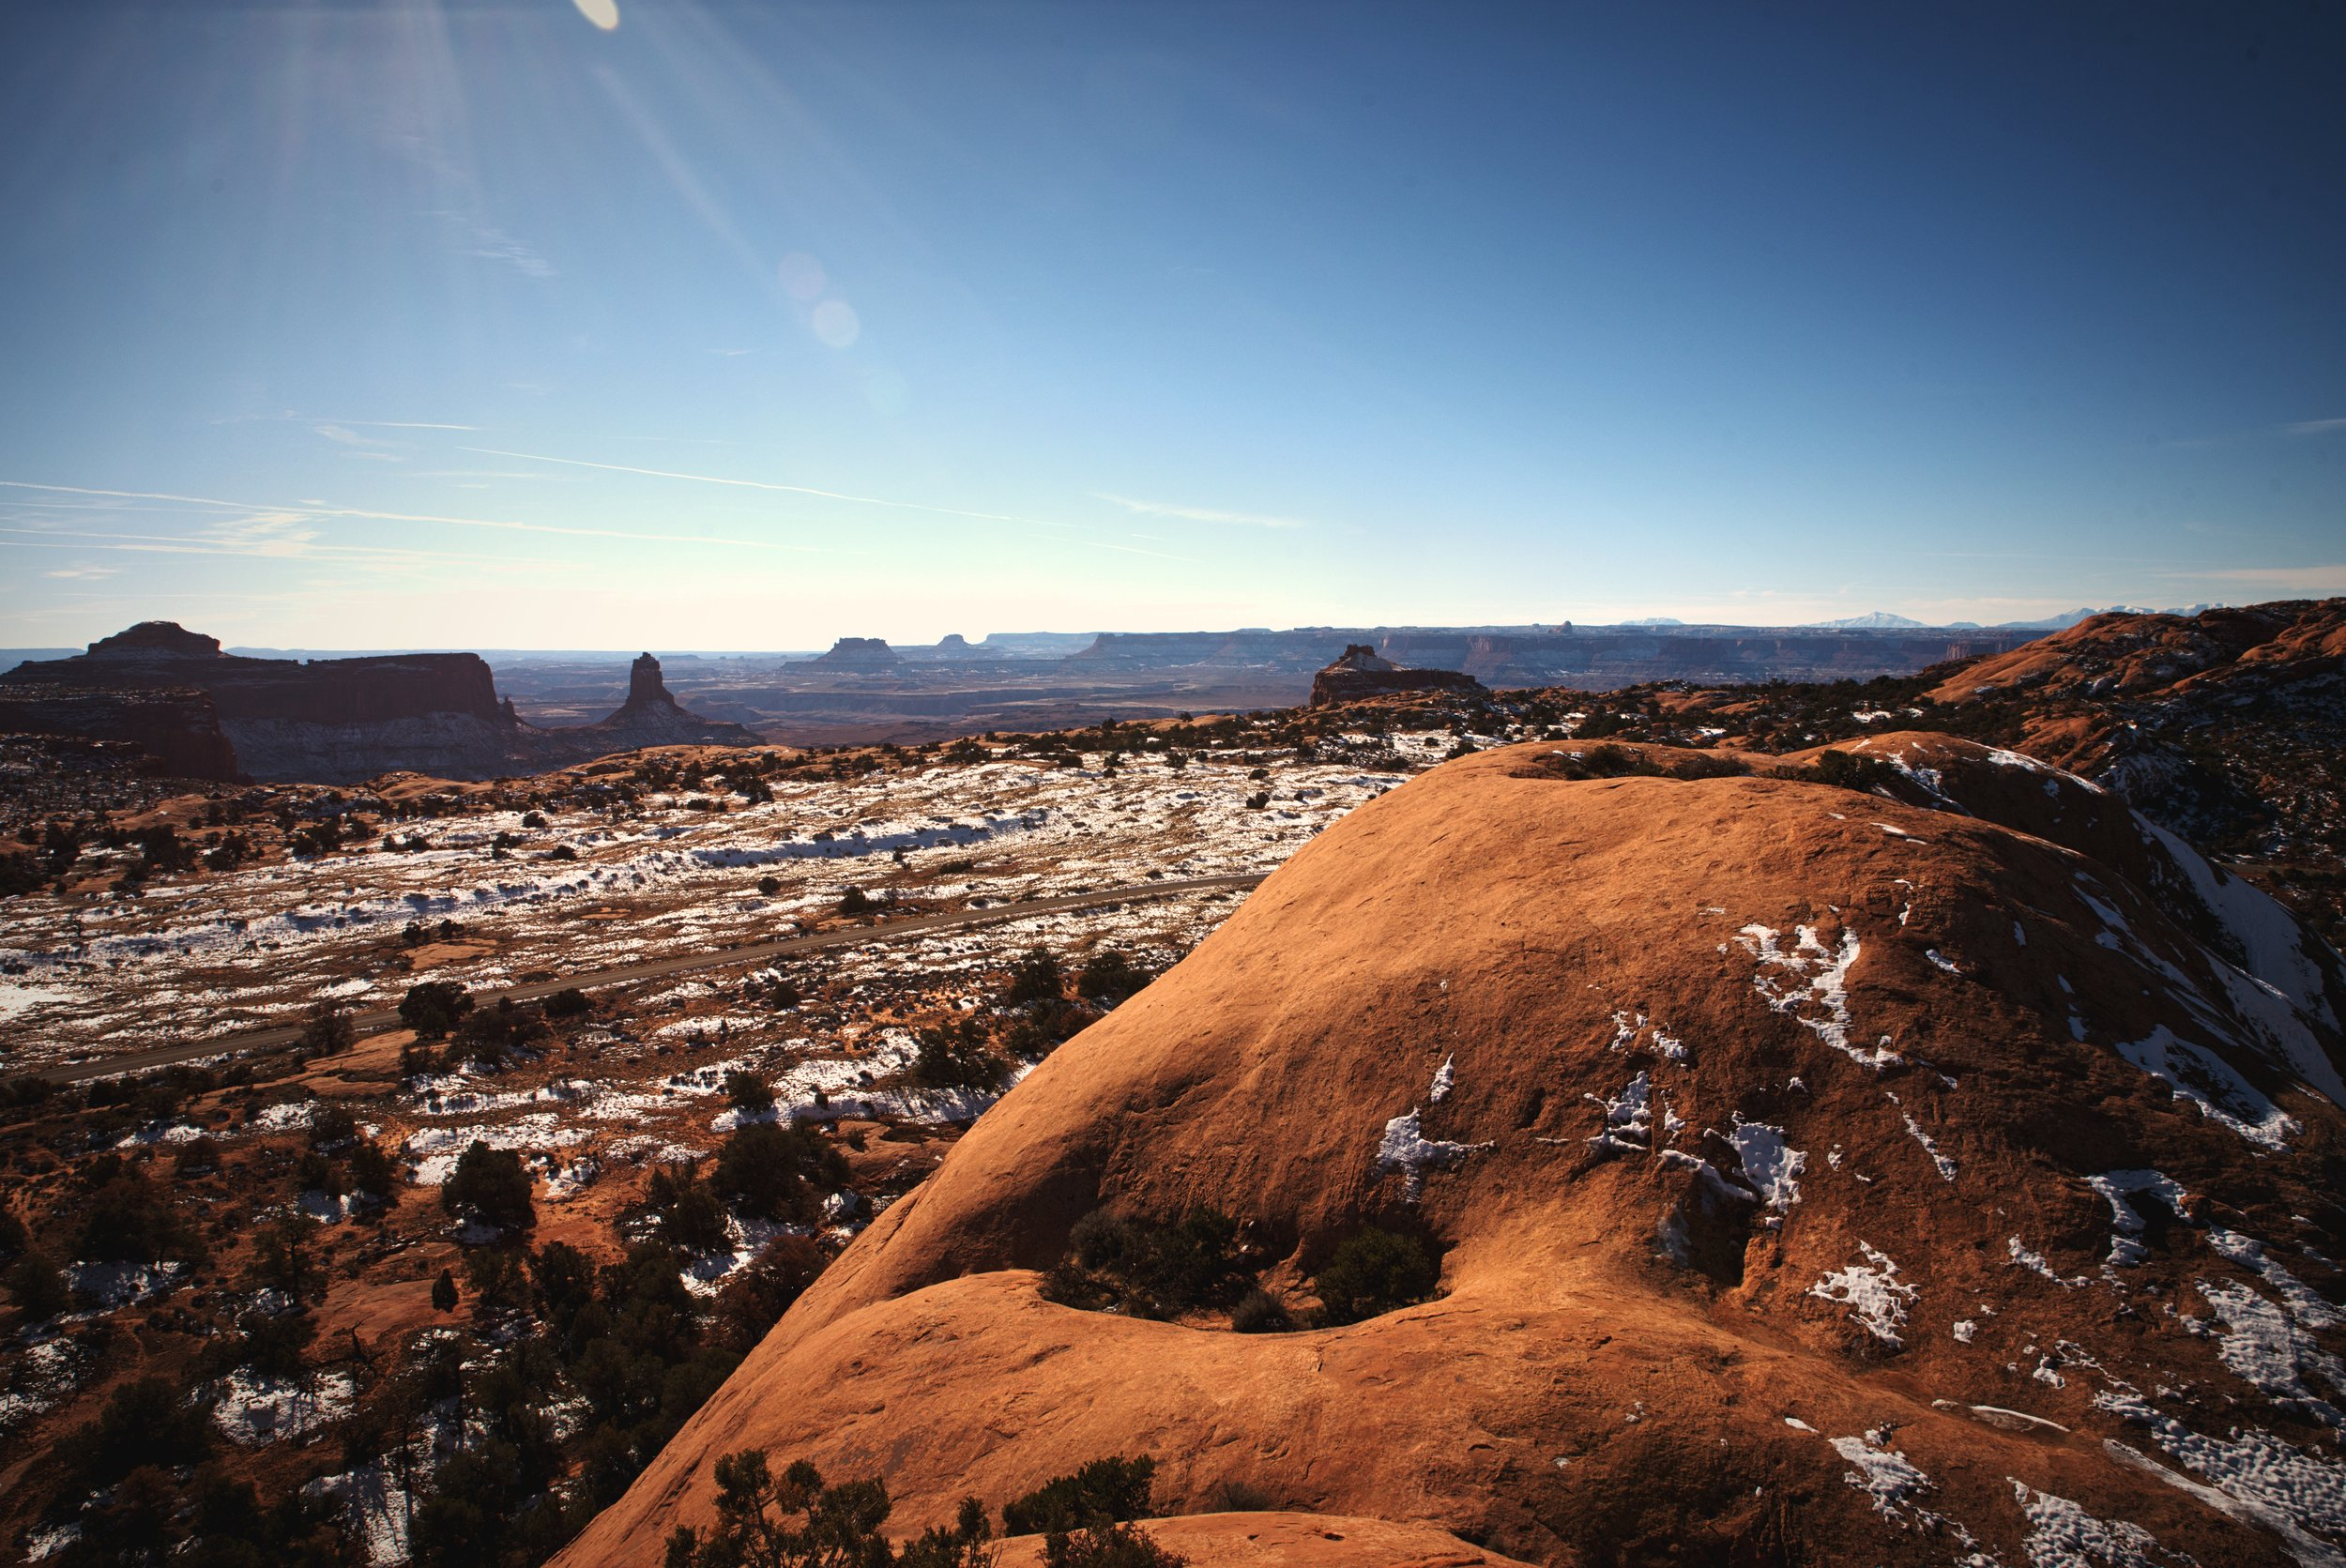 From the top of Whale Rock you get marvelous views of the rest of Canyonlands.